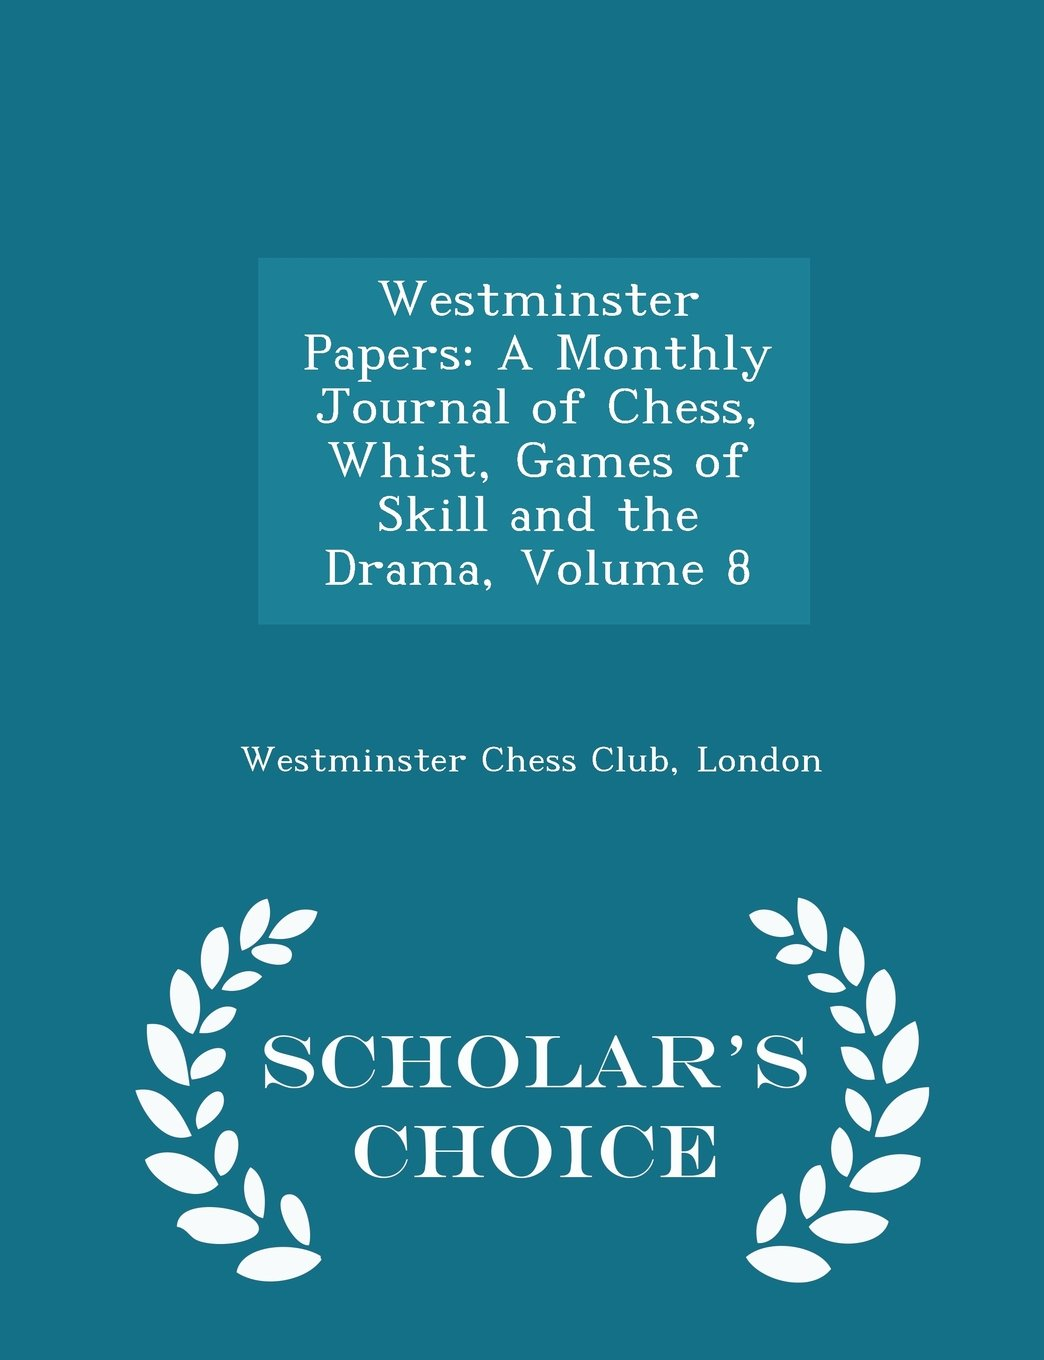 Read Online Westminster Papers: A Monthly Journal of Chess, Whist, Games of Skill and the Drama, Volume 8 - Scholar's Choice Edition pdf epub